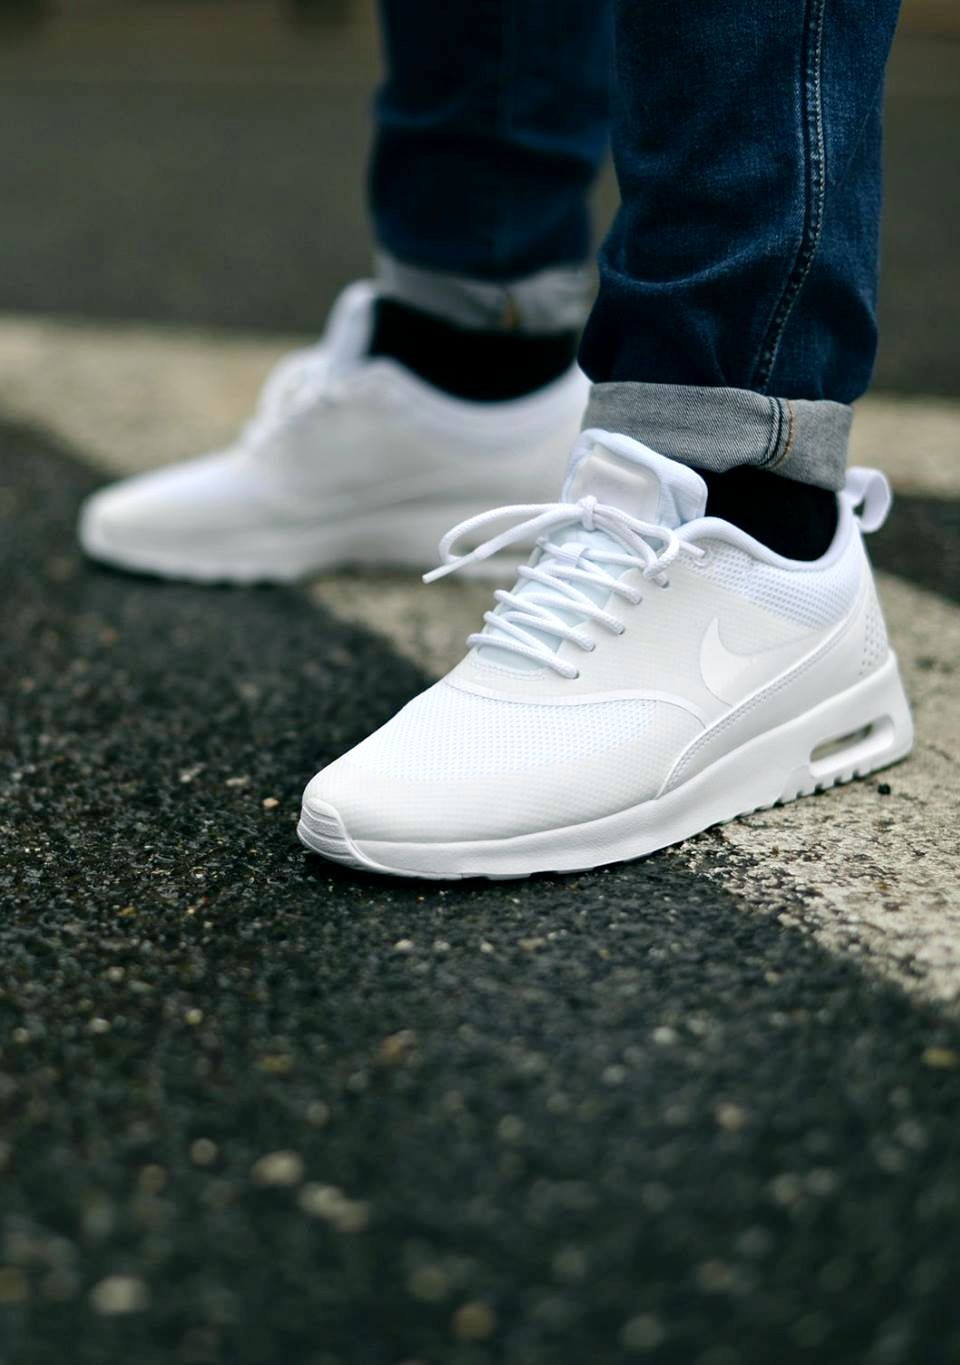 7beee6dbf8e Nike Air Max Thea  All White  via CHMIELNA 20 Buy it   CHMIELNA 20